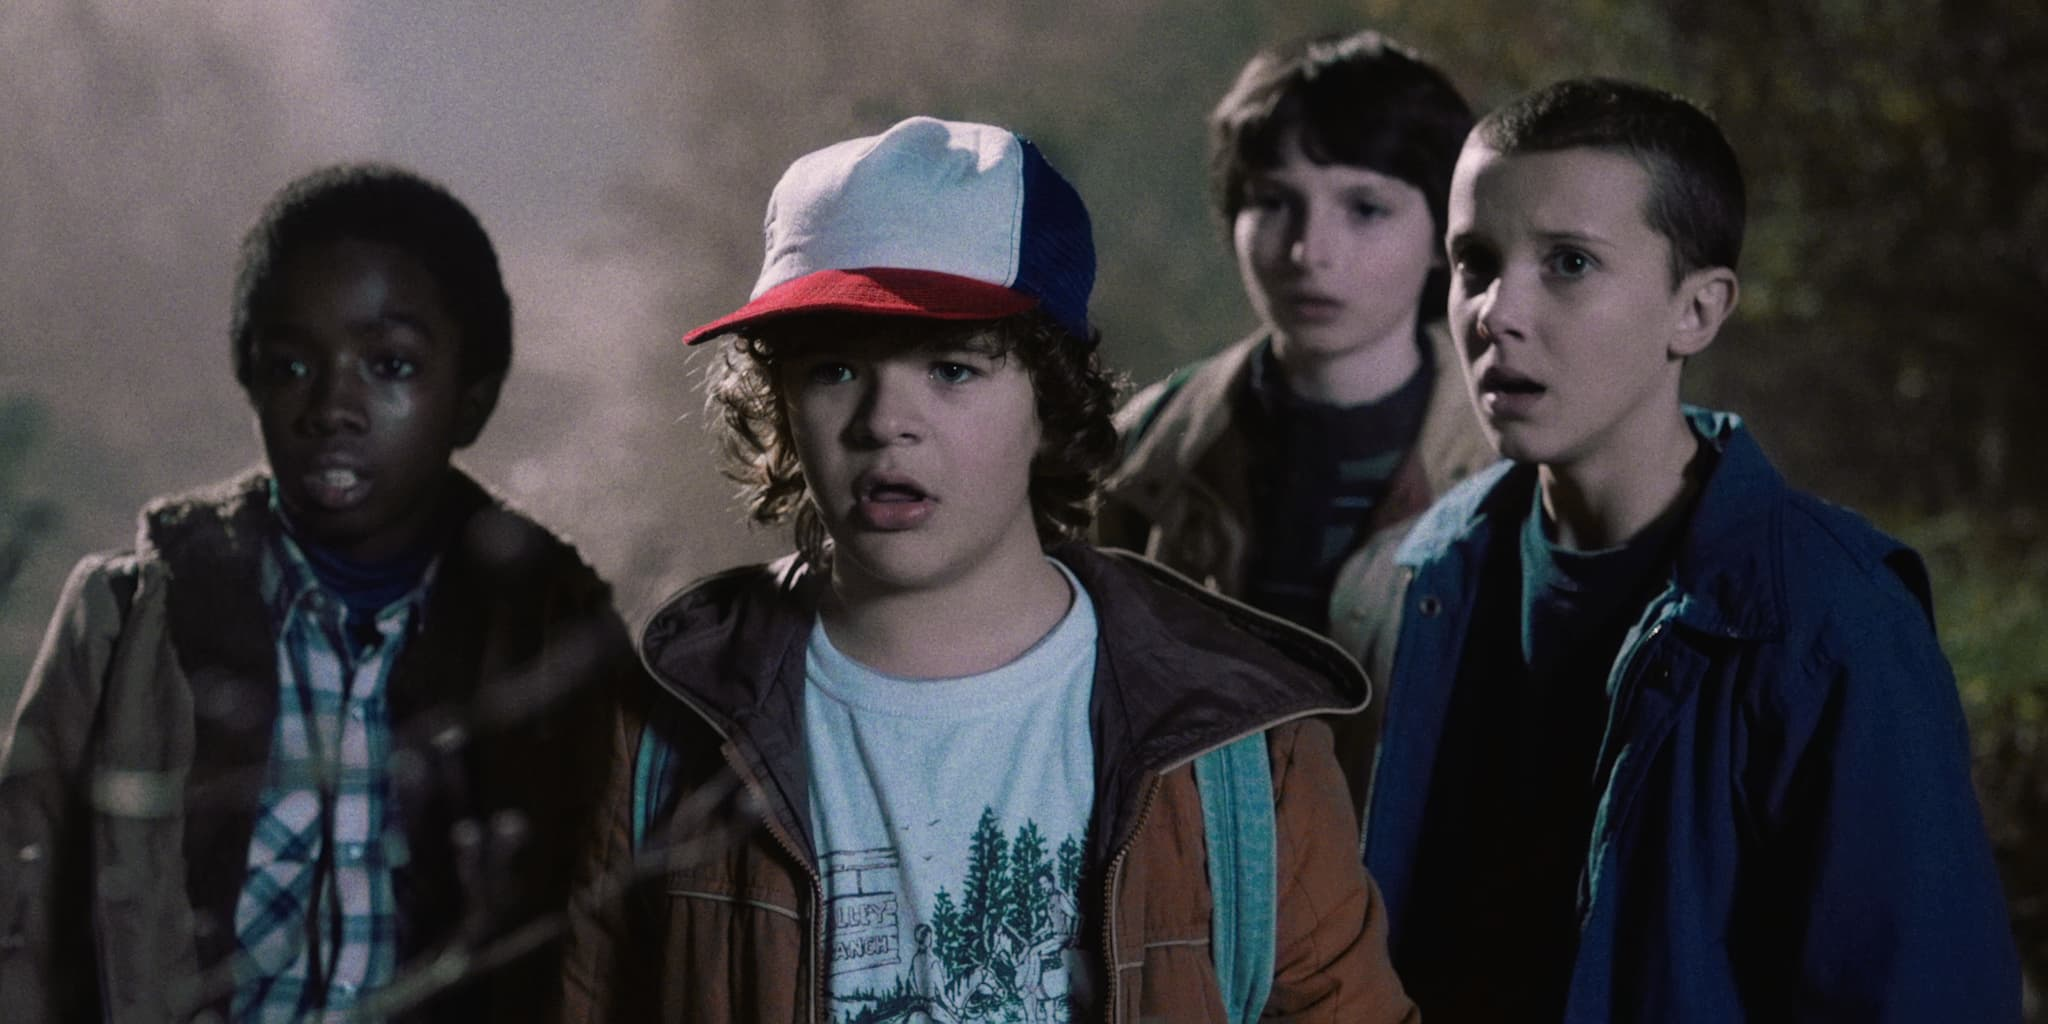 They're like the Goonies, but for a new generation!